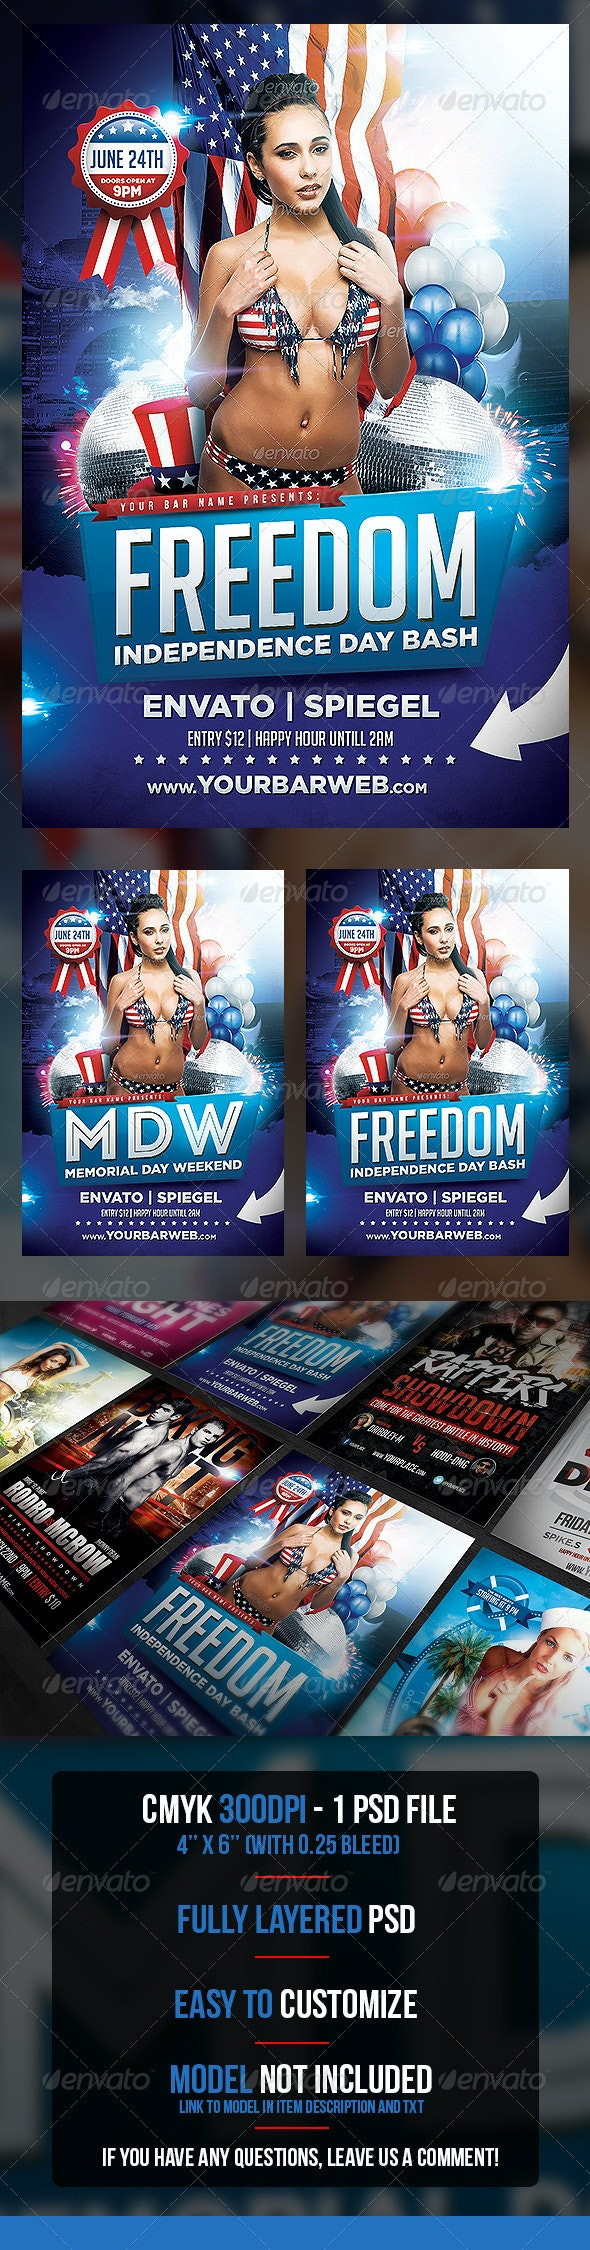 Freedom Memorial and Independence Flyer Template - Flyers Print Templates